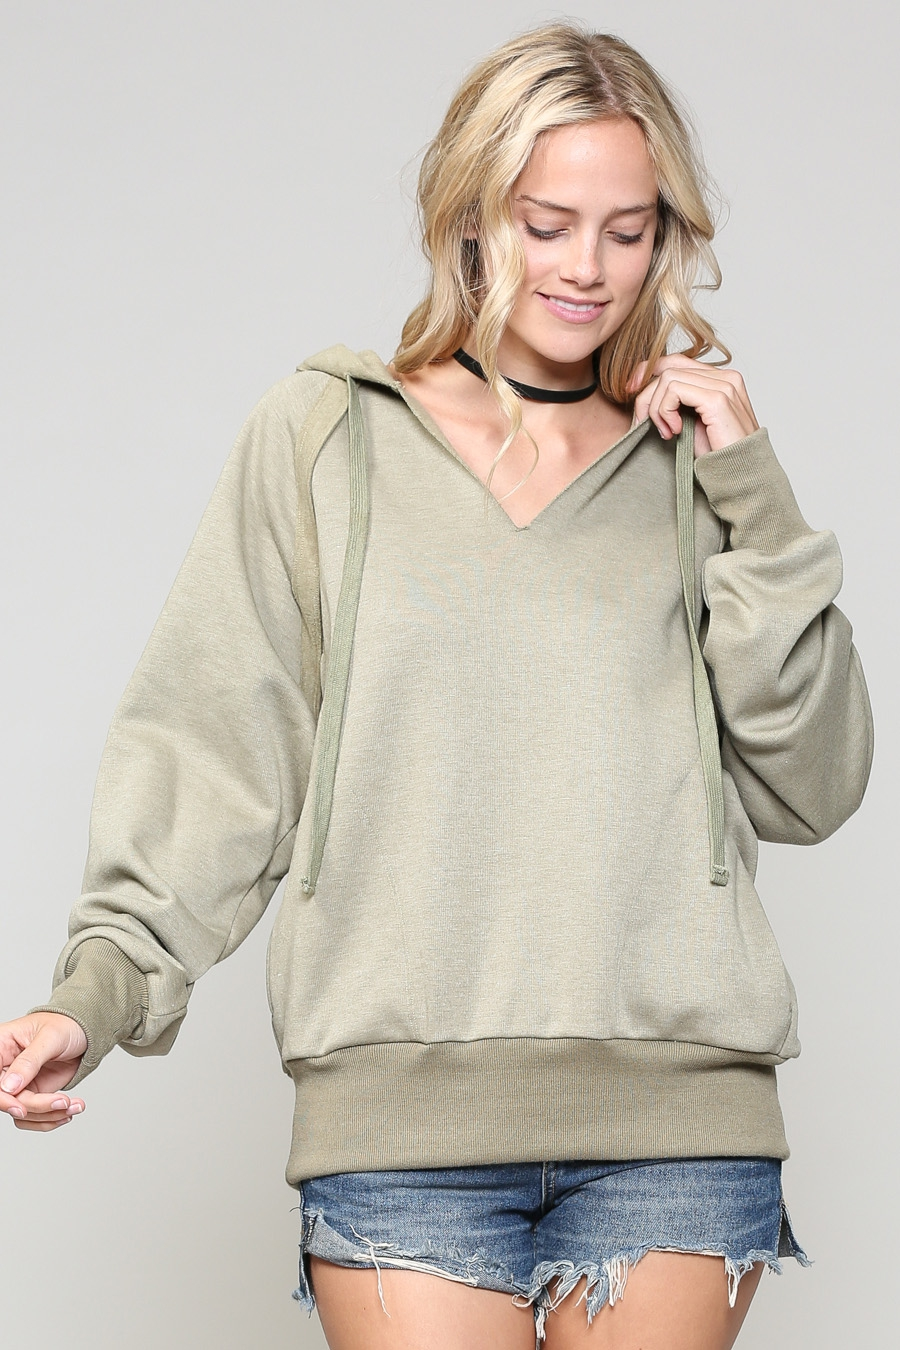 SOFT HOODIE WITH HIP POCKETS - orangeshine.com